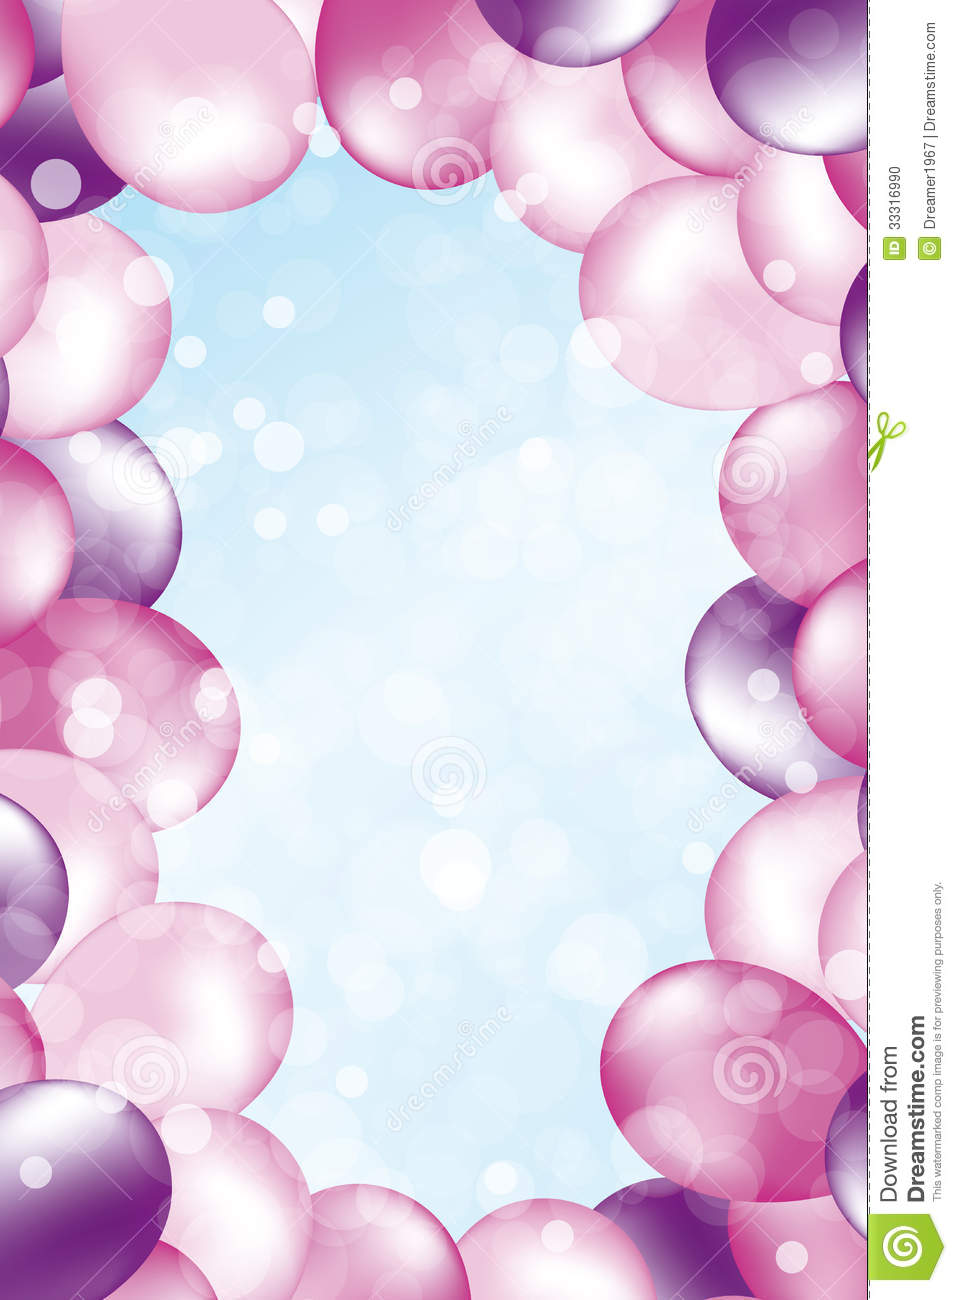 Birthday Card With Copy Space Photo Image 33316990 – Birthday Cards Backgrounds